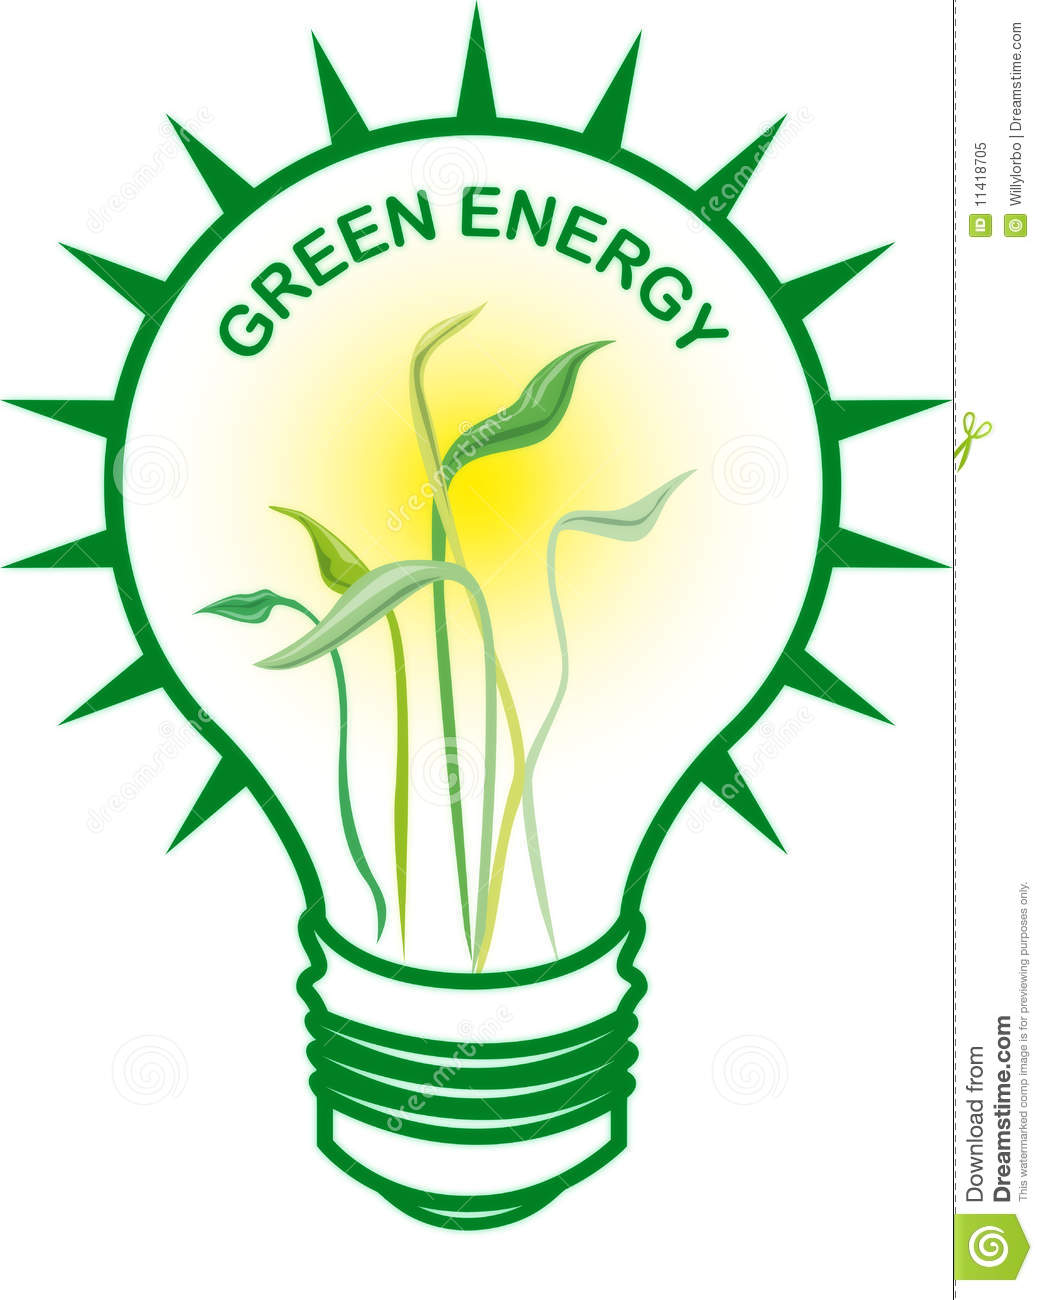 Green Energy Bulb Royalty Free Stock Photo   Image  11418705